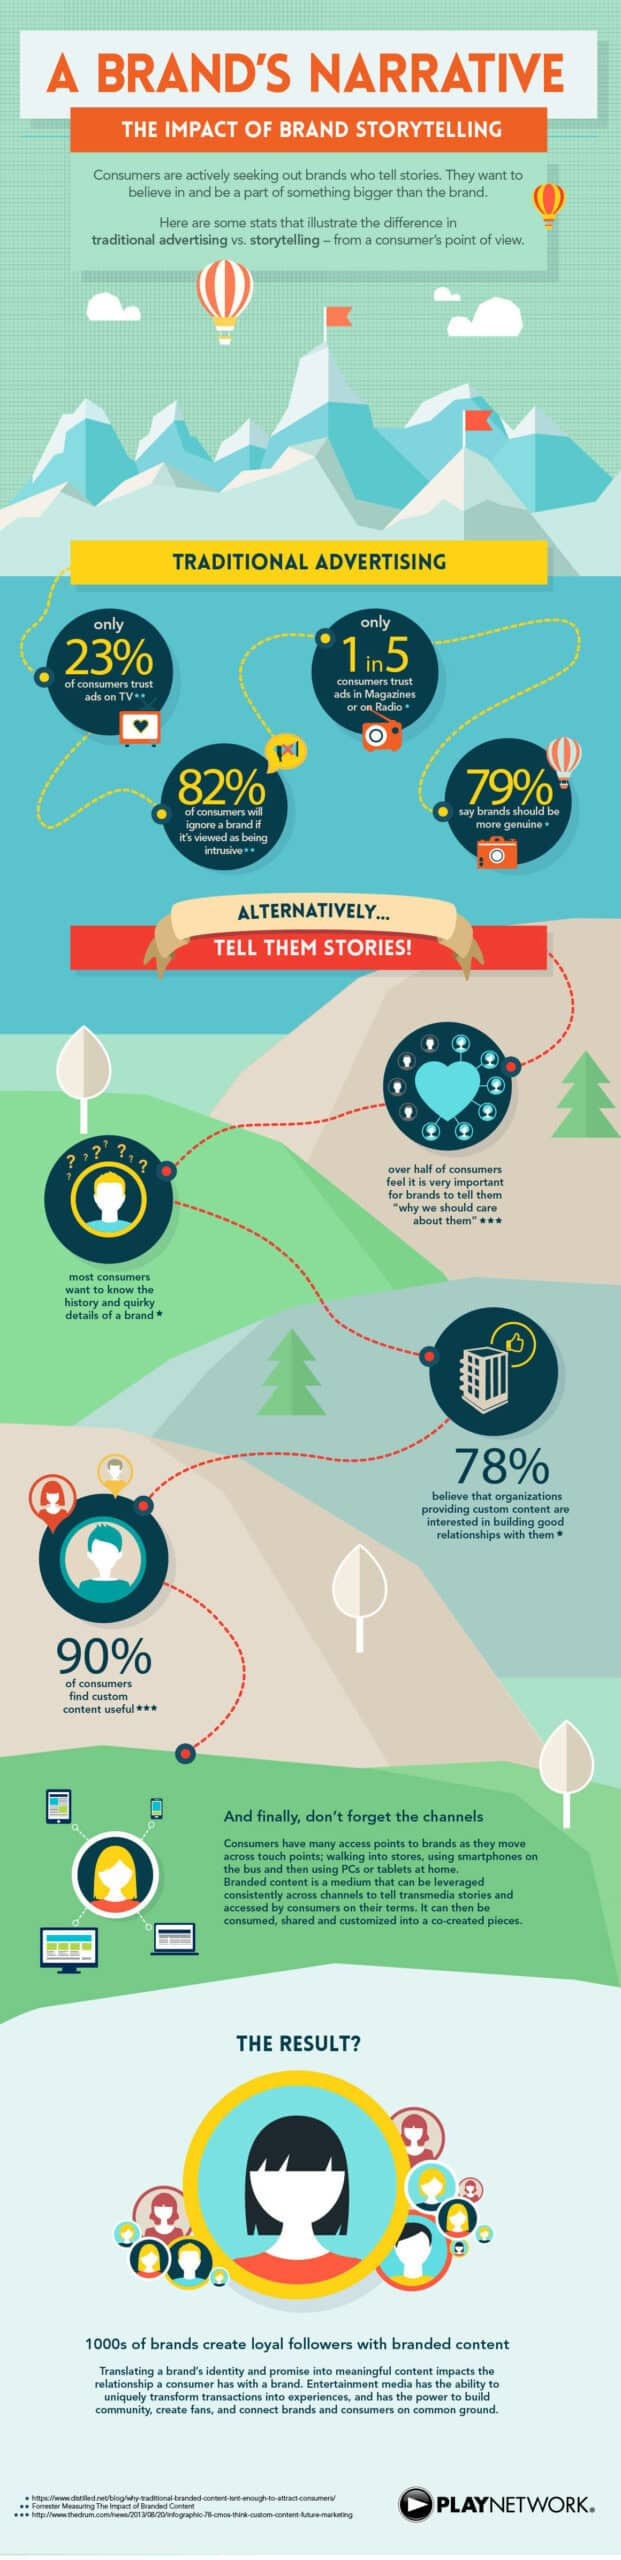 Learn more about the impact and power that storytelling has for your brand, in this awesome infographic!